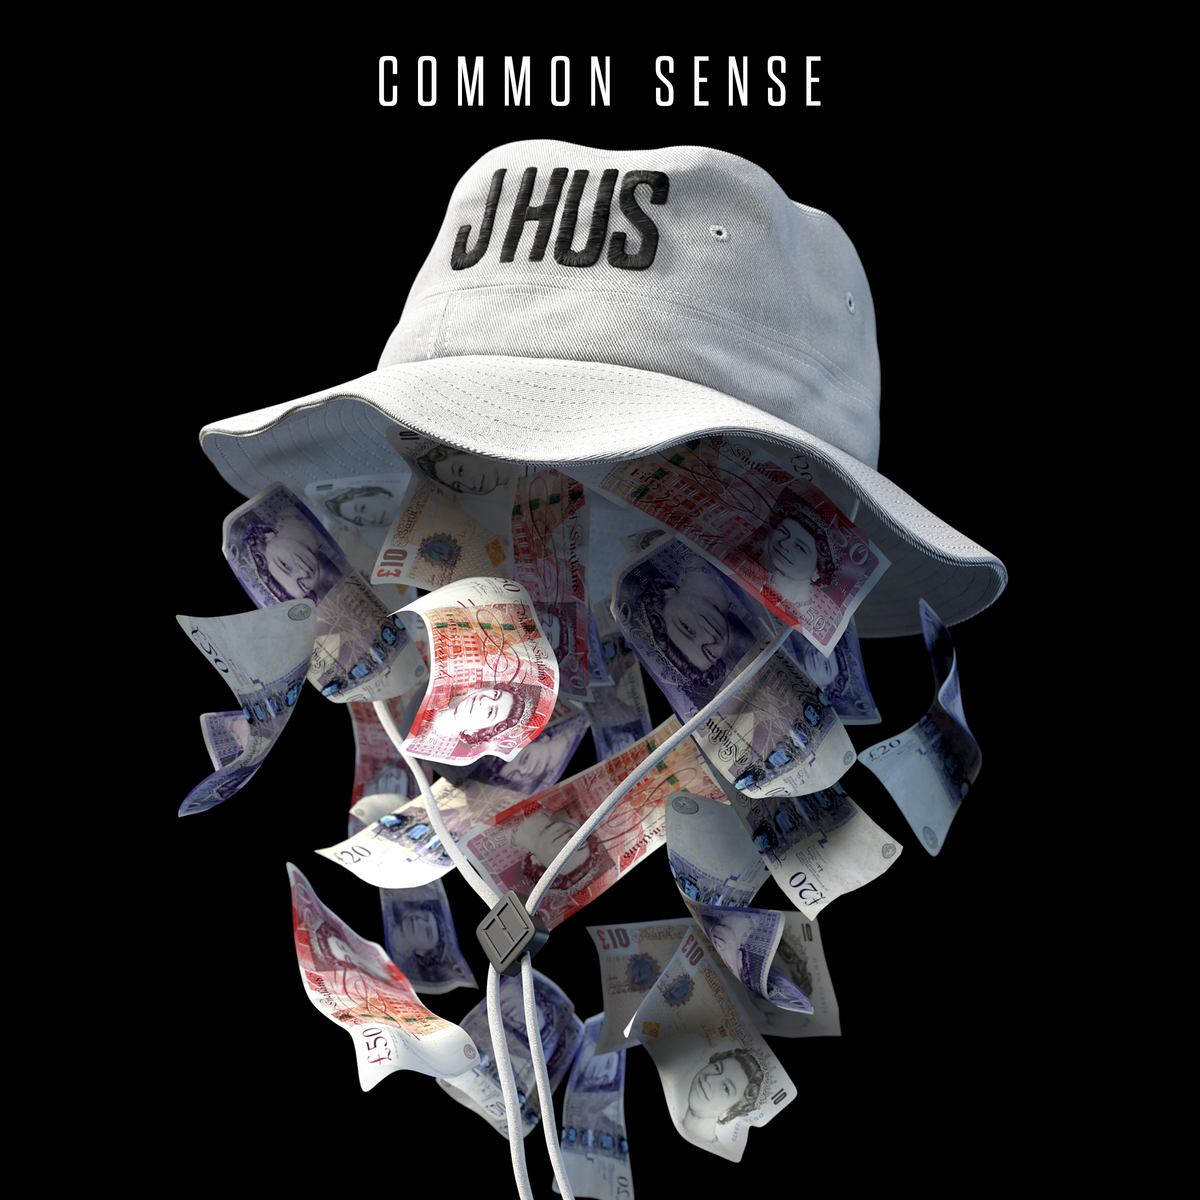 J Hus Common Sense MP3 Download